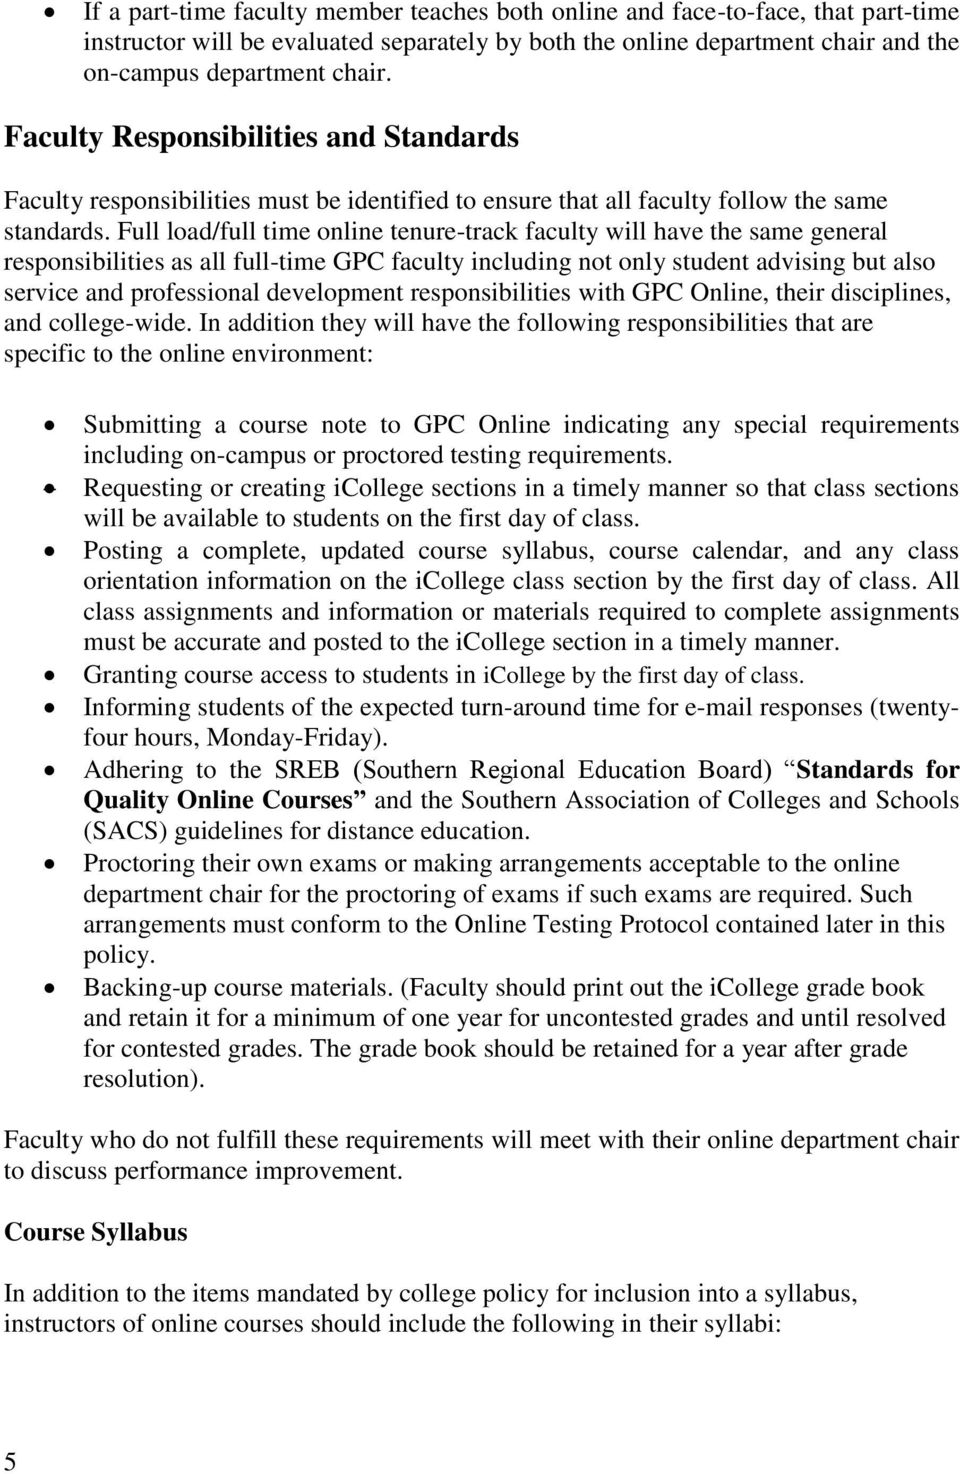 Full load/full time online tenure-track faculty will have the same general responsibilities as all full-time GPC faculty including not only student advising but also service and professional